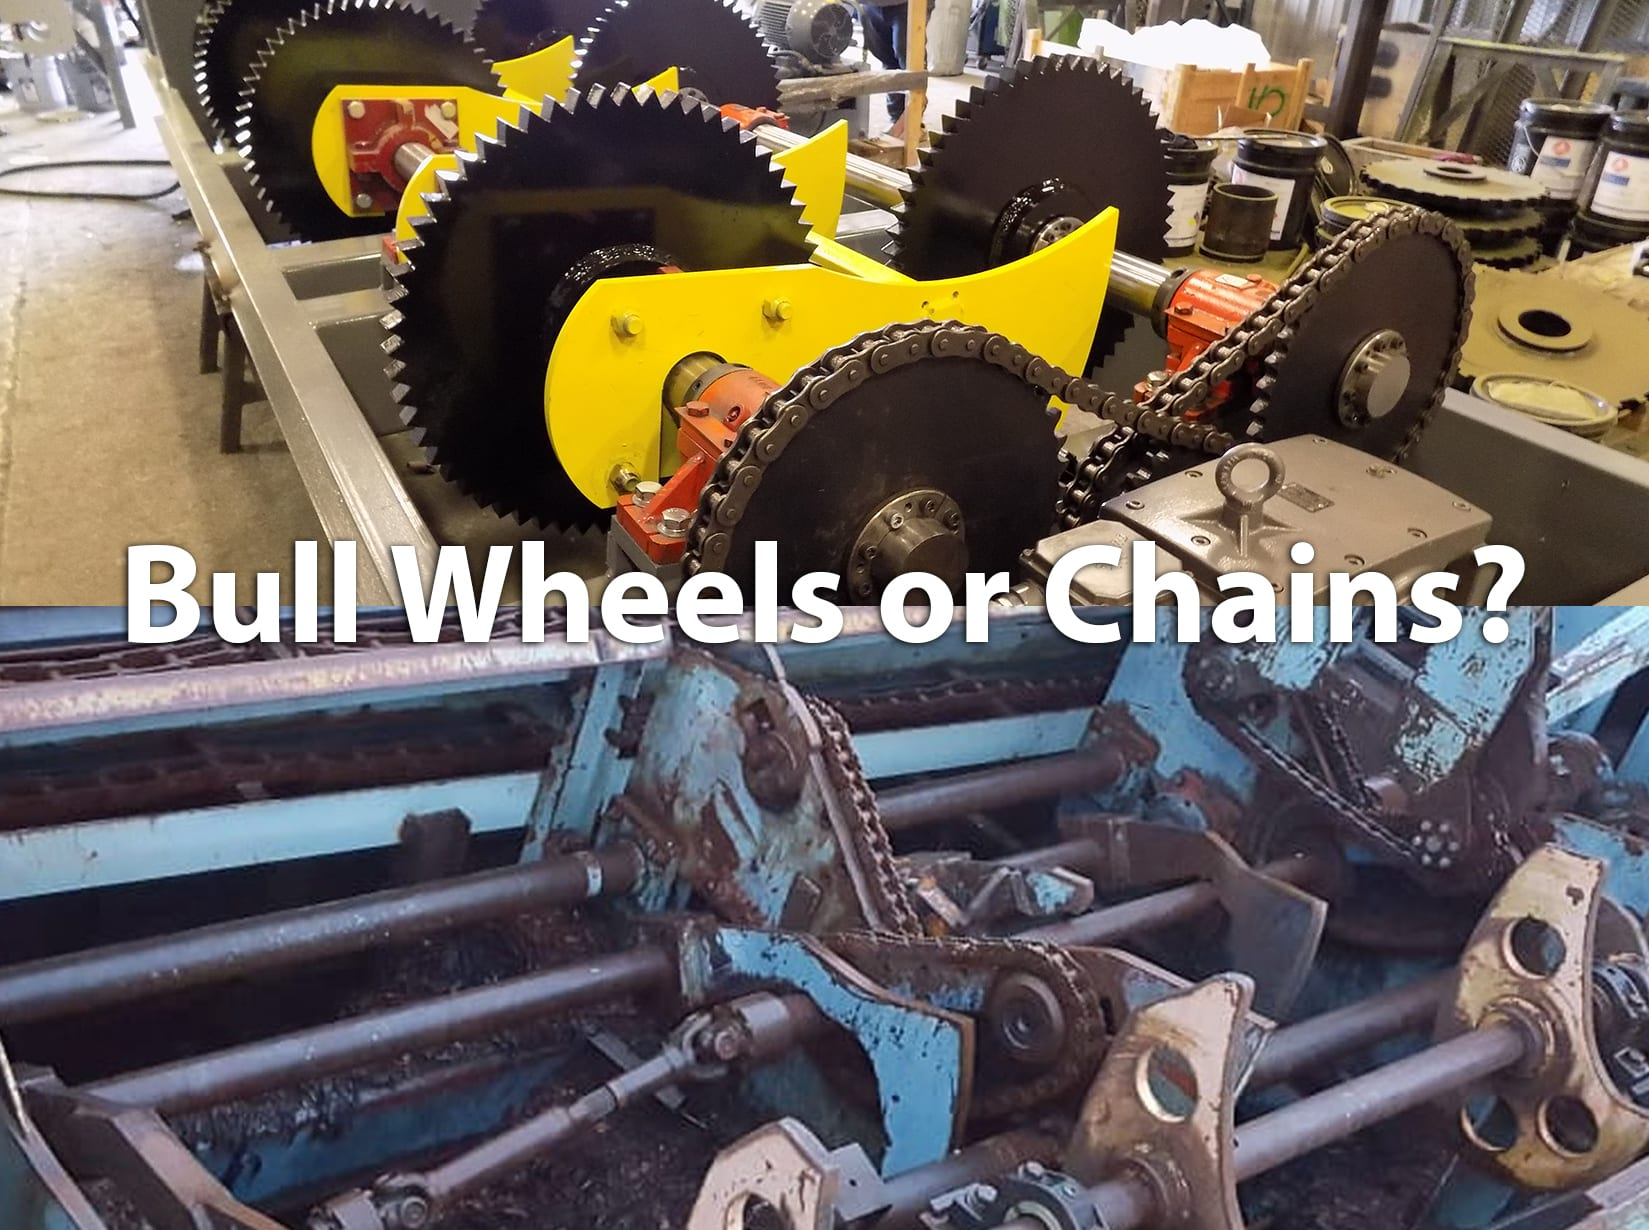 Bull Wheels vs. Chains on Butt Flare Reducers